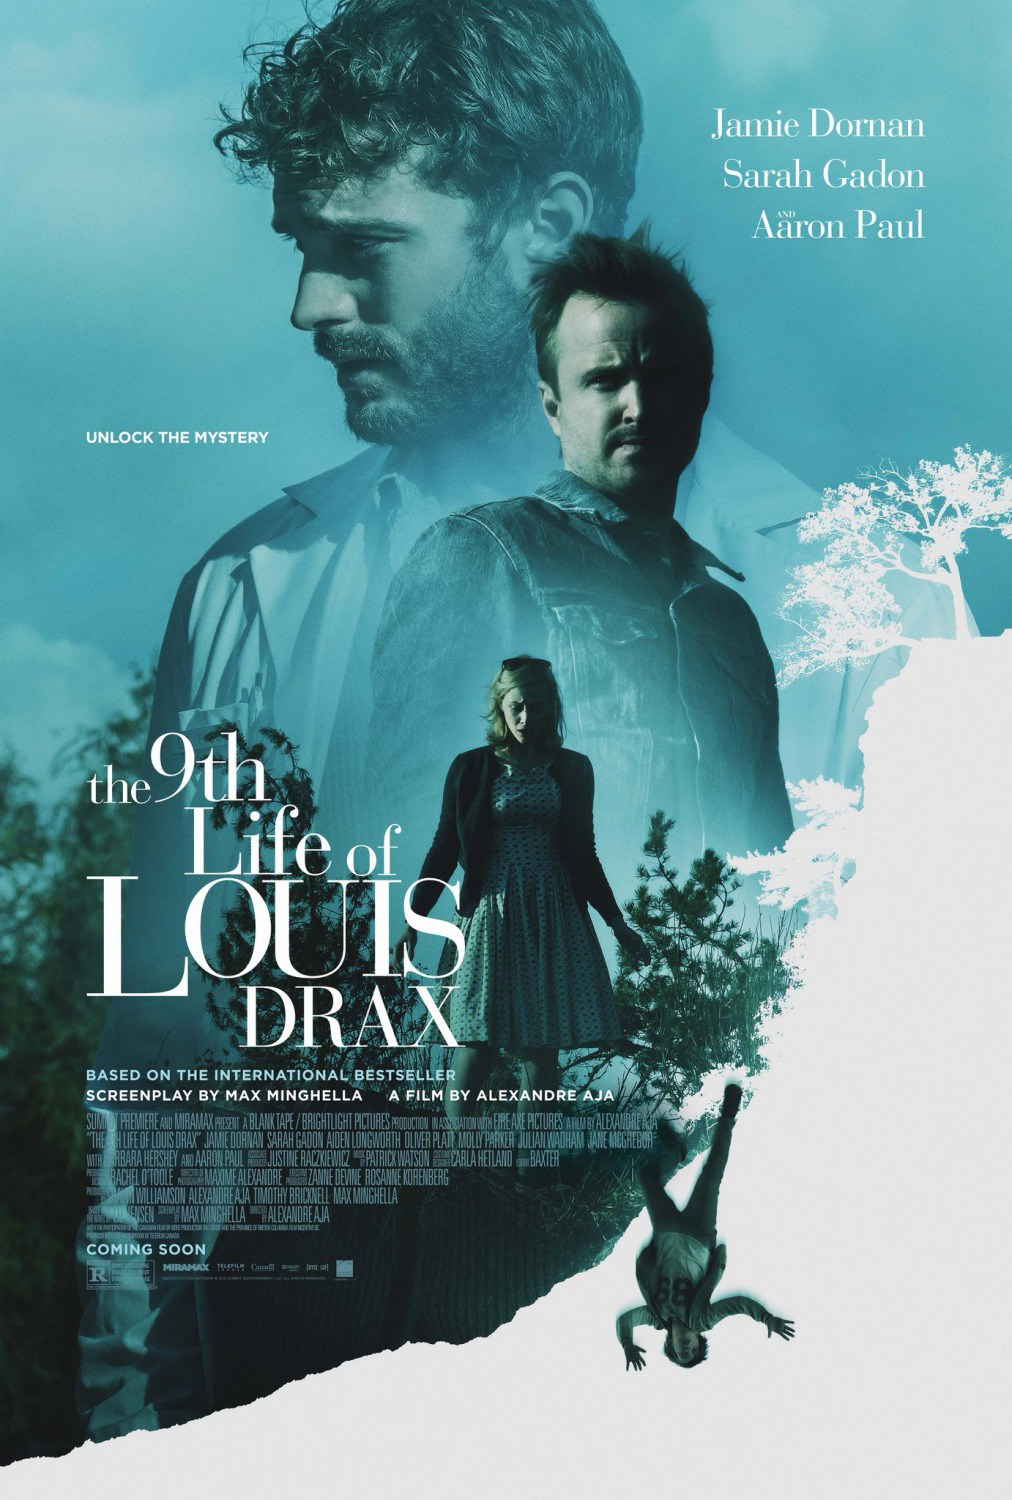 Capa The 9th Life of Louis Drax Torrent 720p 1080p 4k Dublado Baixar